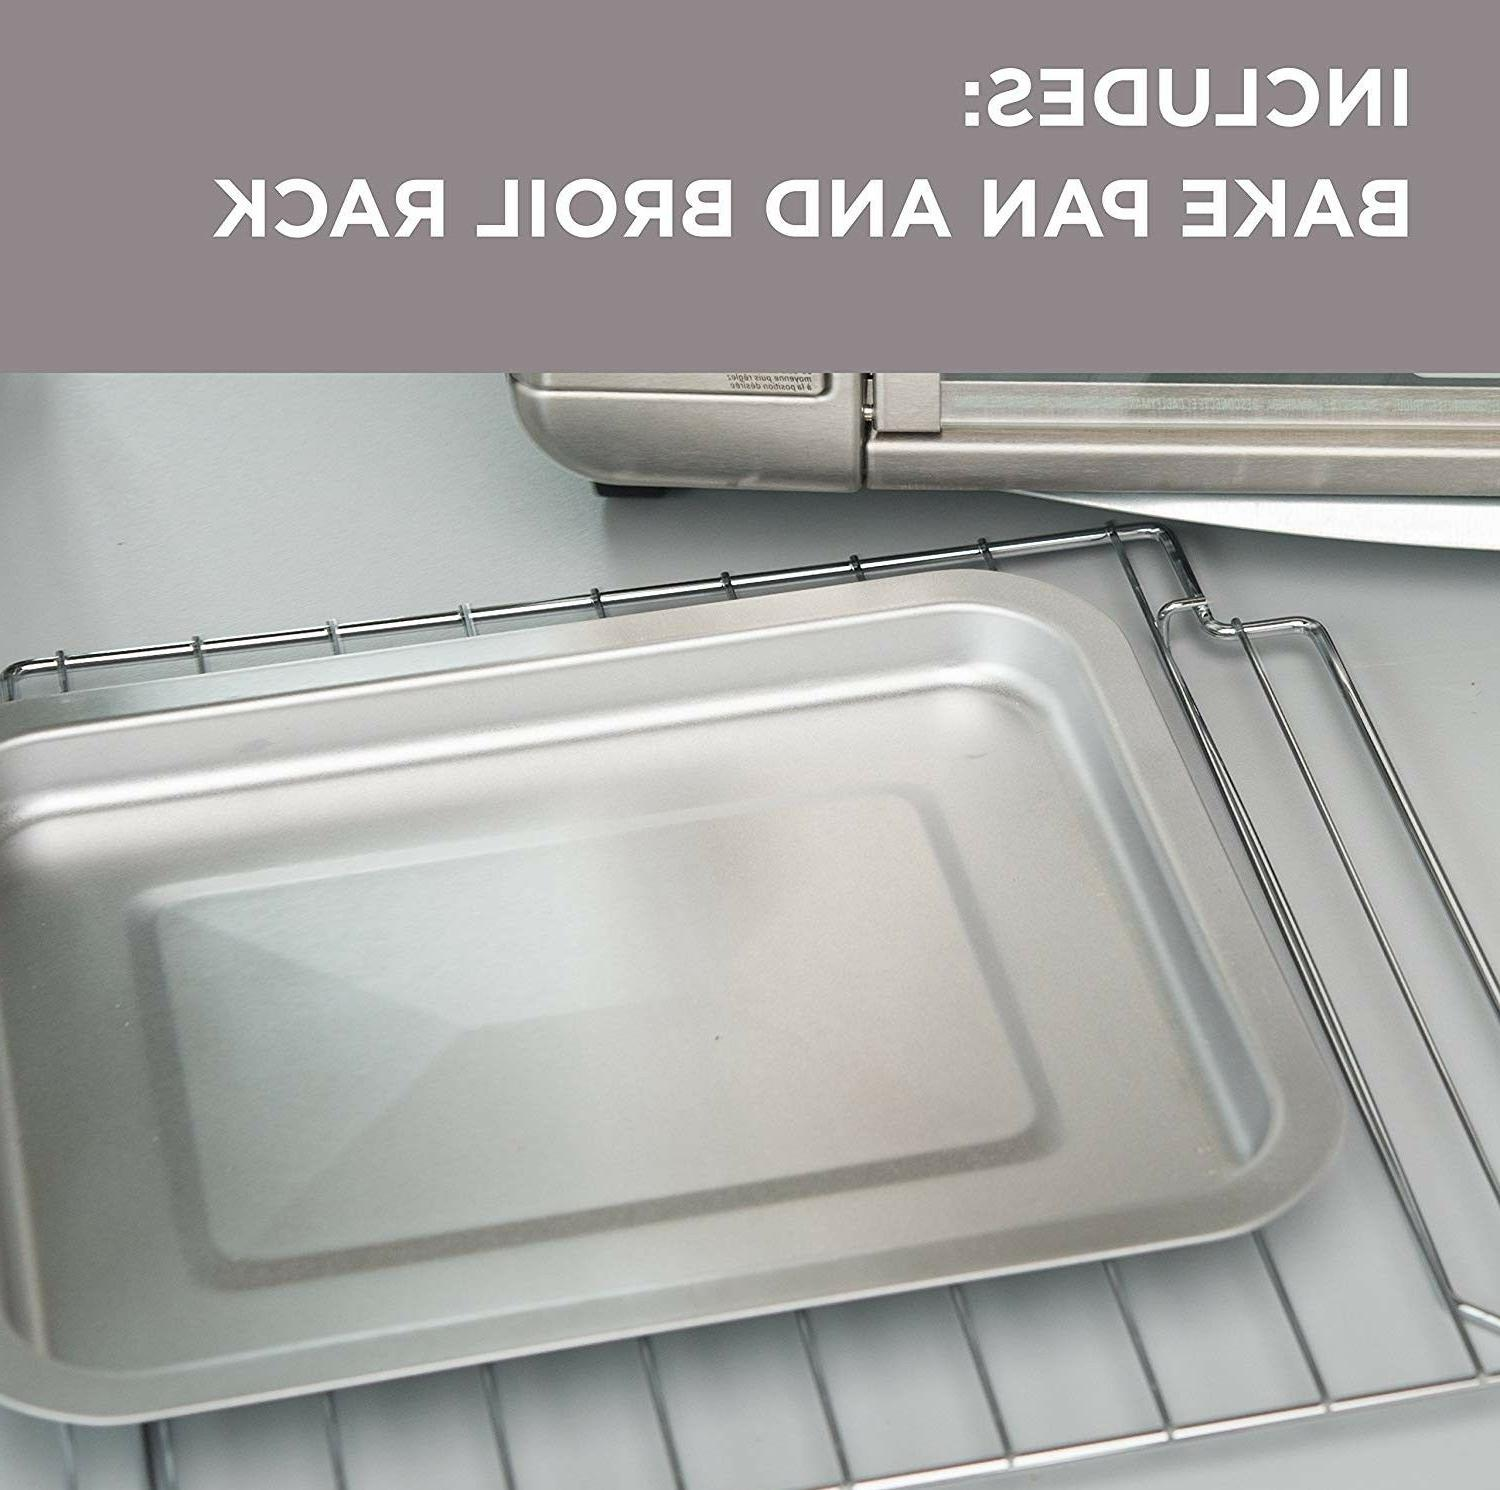 Commercial Oven Convection Toaster